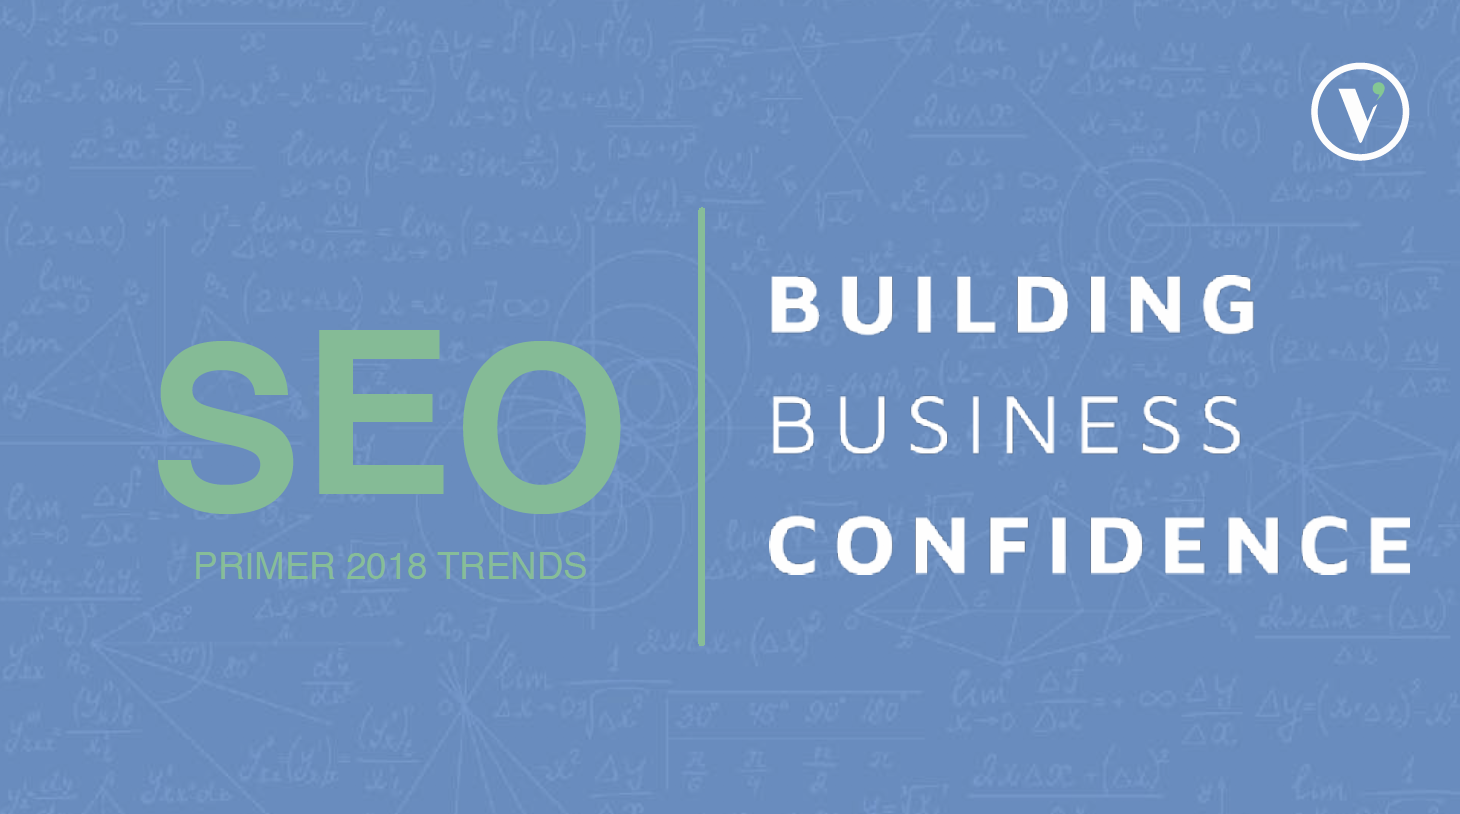 Download our Free eBook SEO Primer 2018 trends